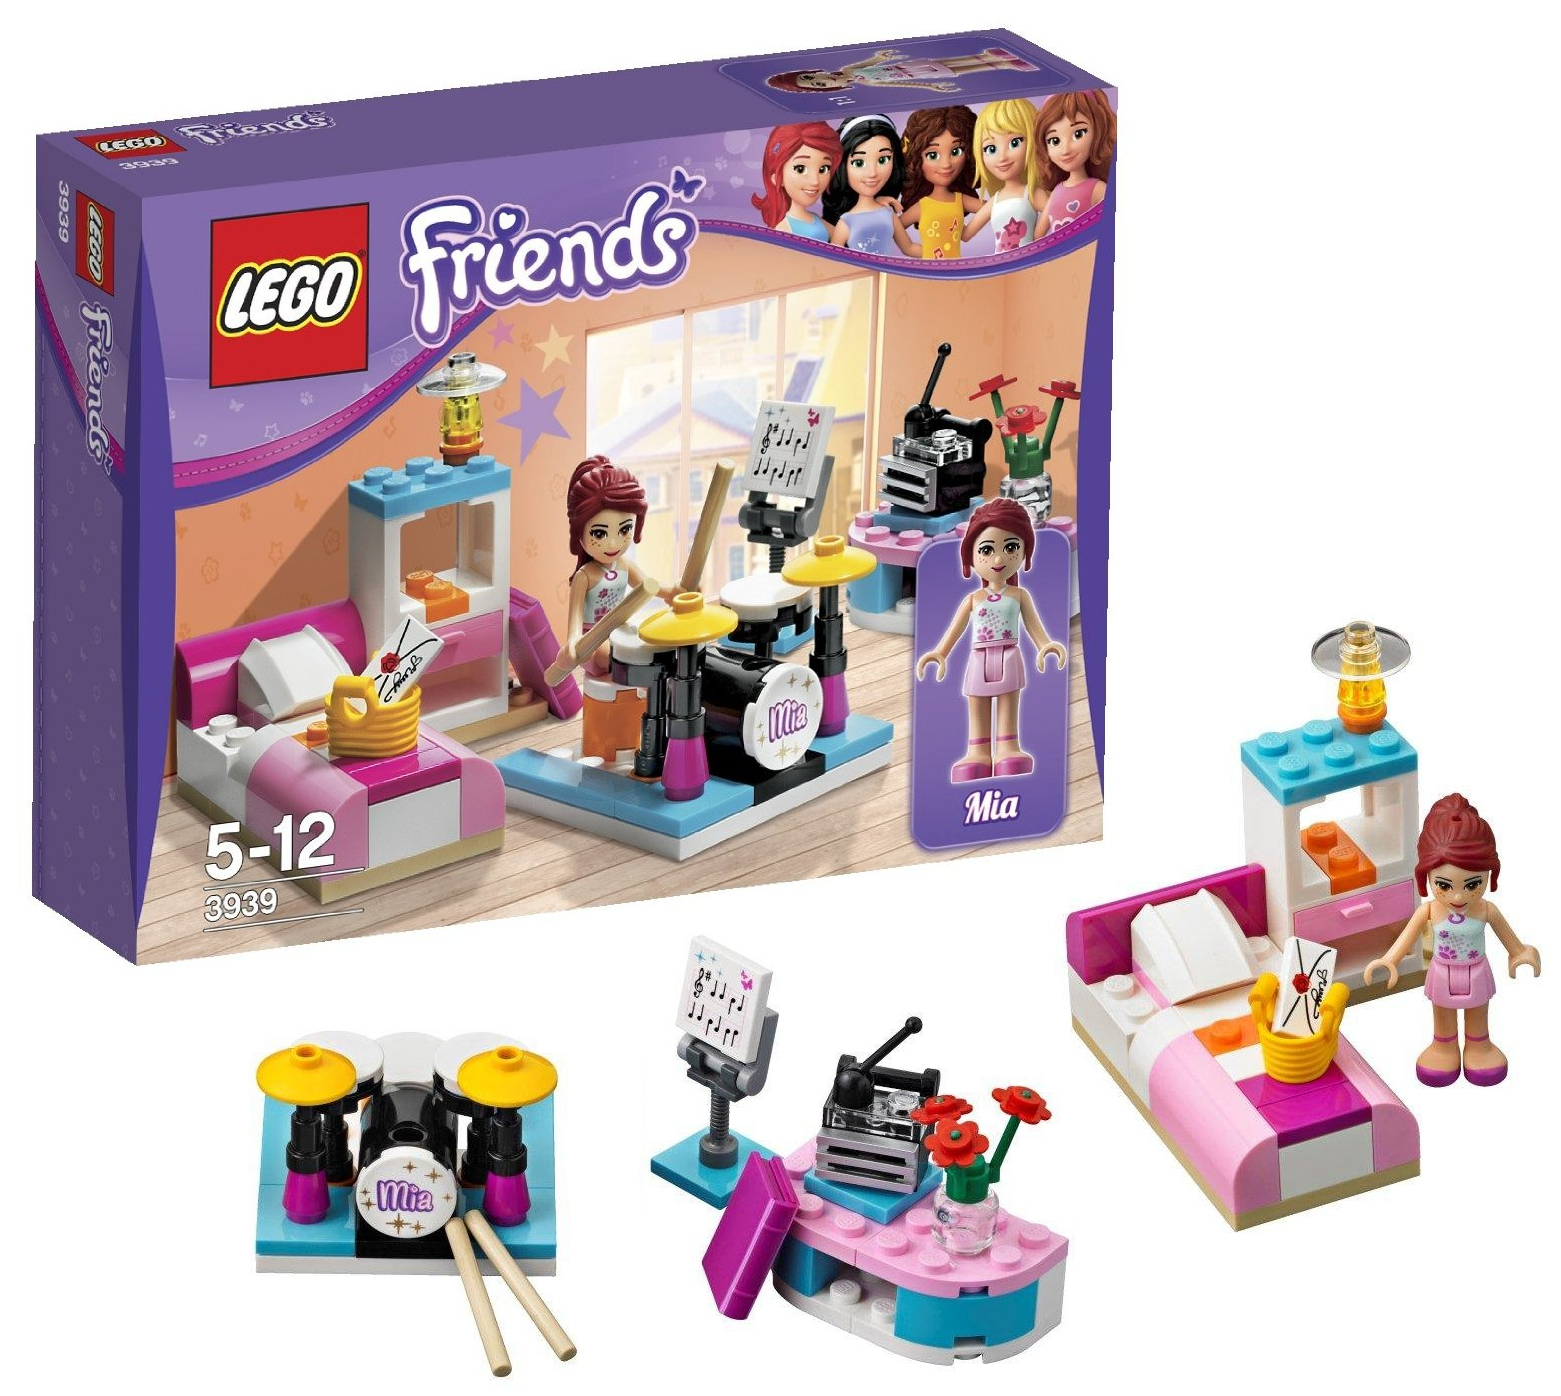 Lego Friends Piscina The Brickverse Lego Friends Summer Wave